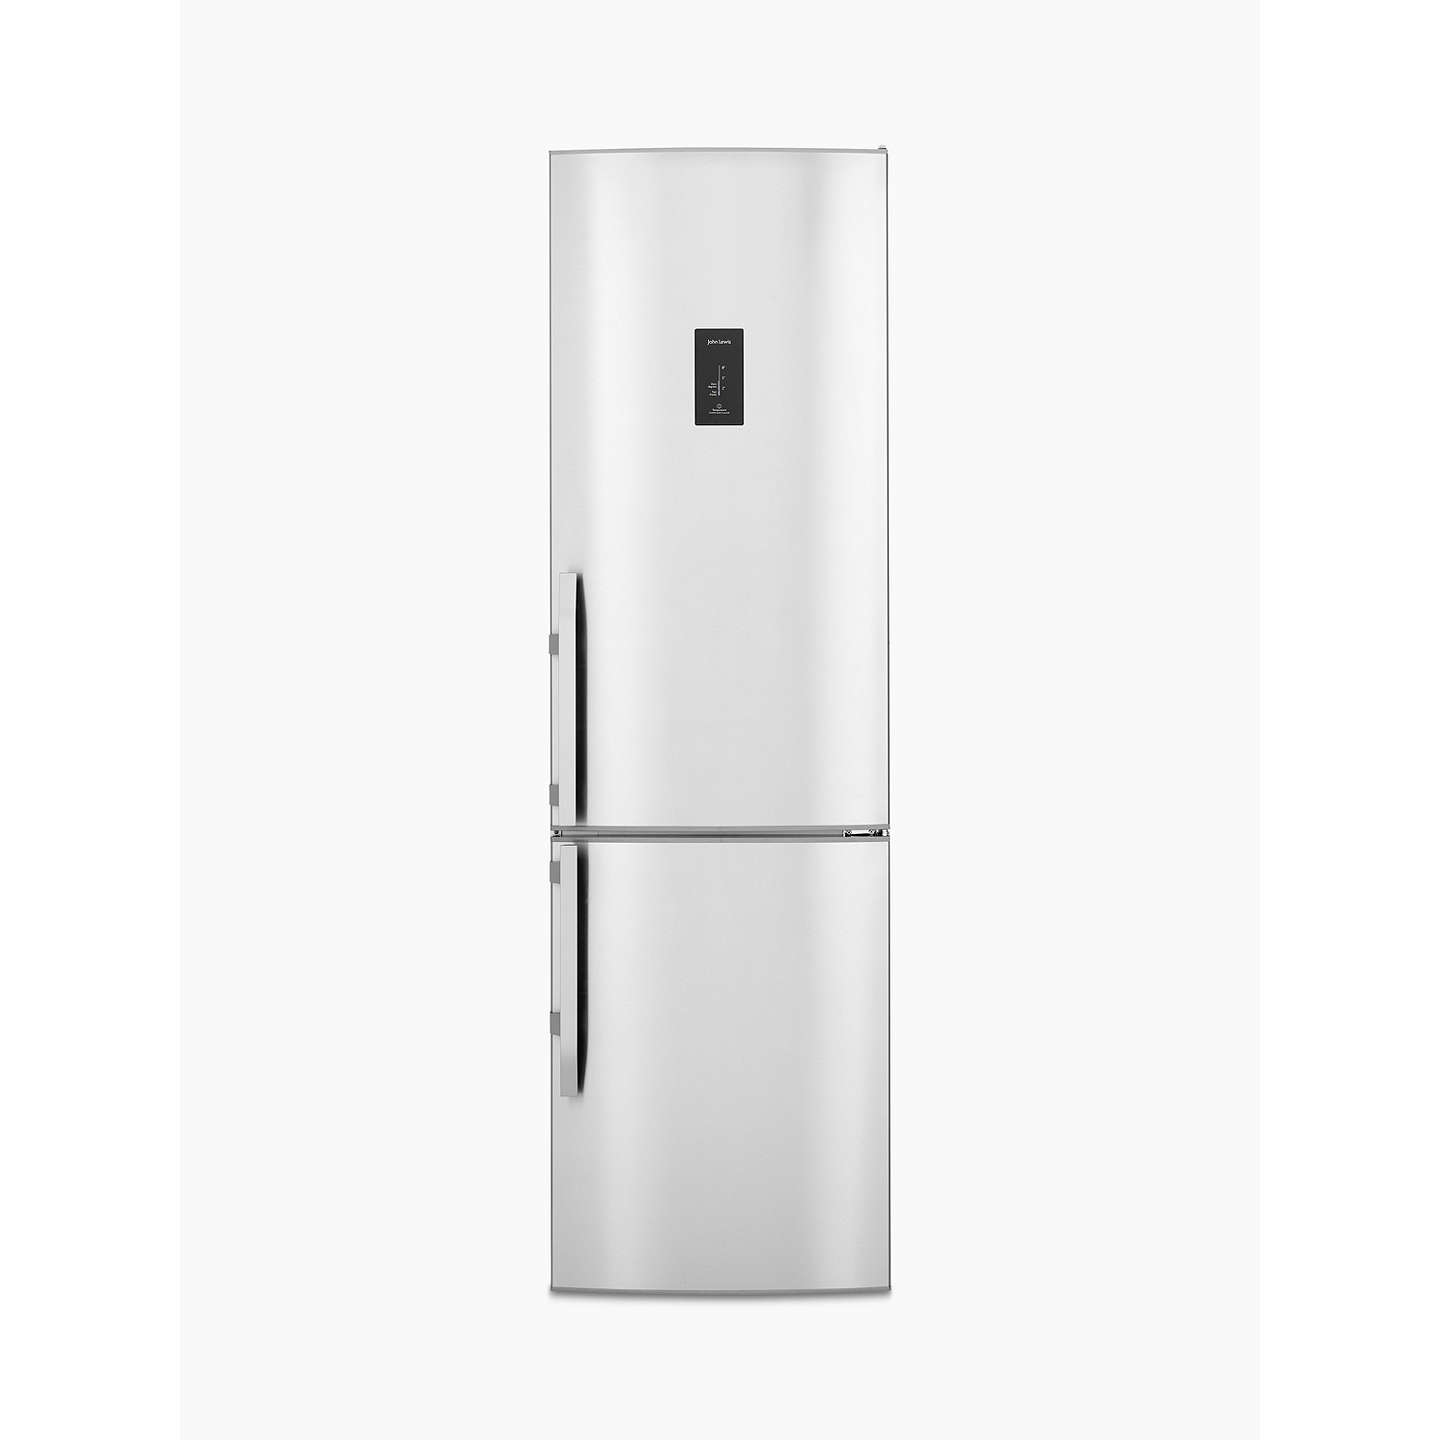 john lewis jlffs2033 freestanding fridge freezer a energy rating rh johnlewis com Zers Gender Zero Dark Th